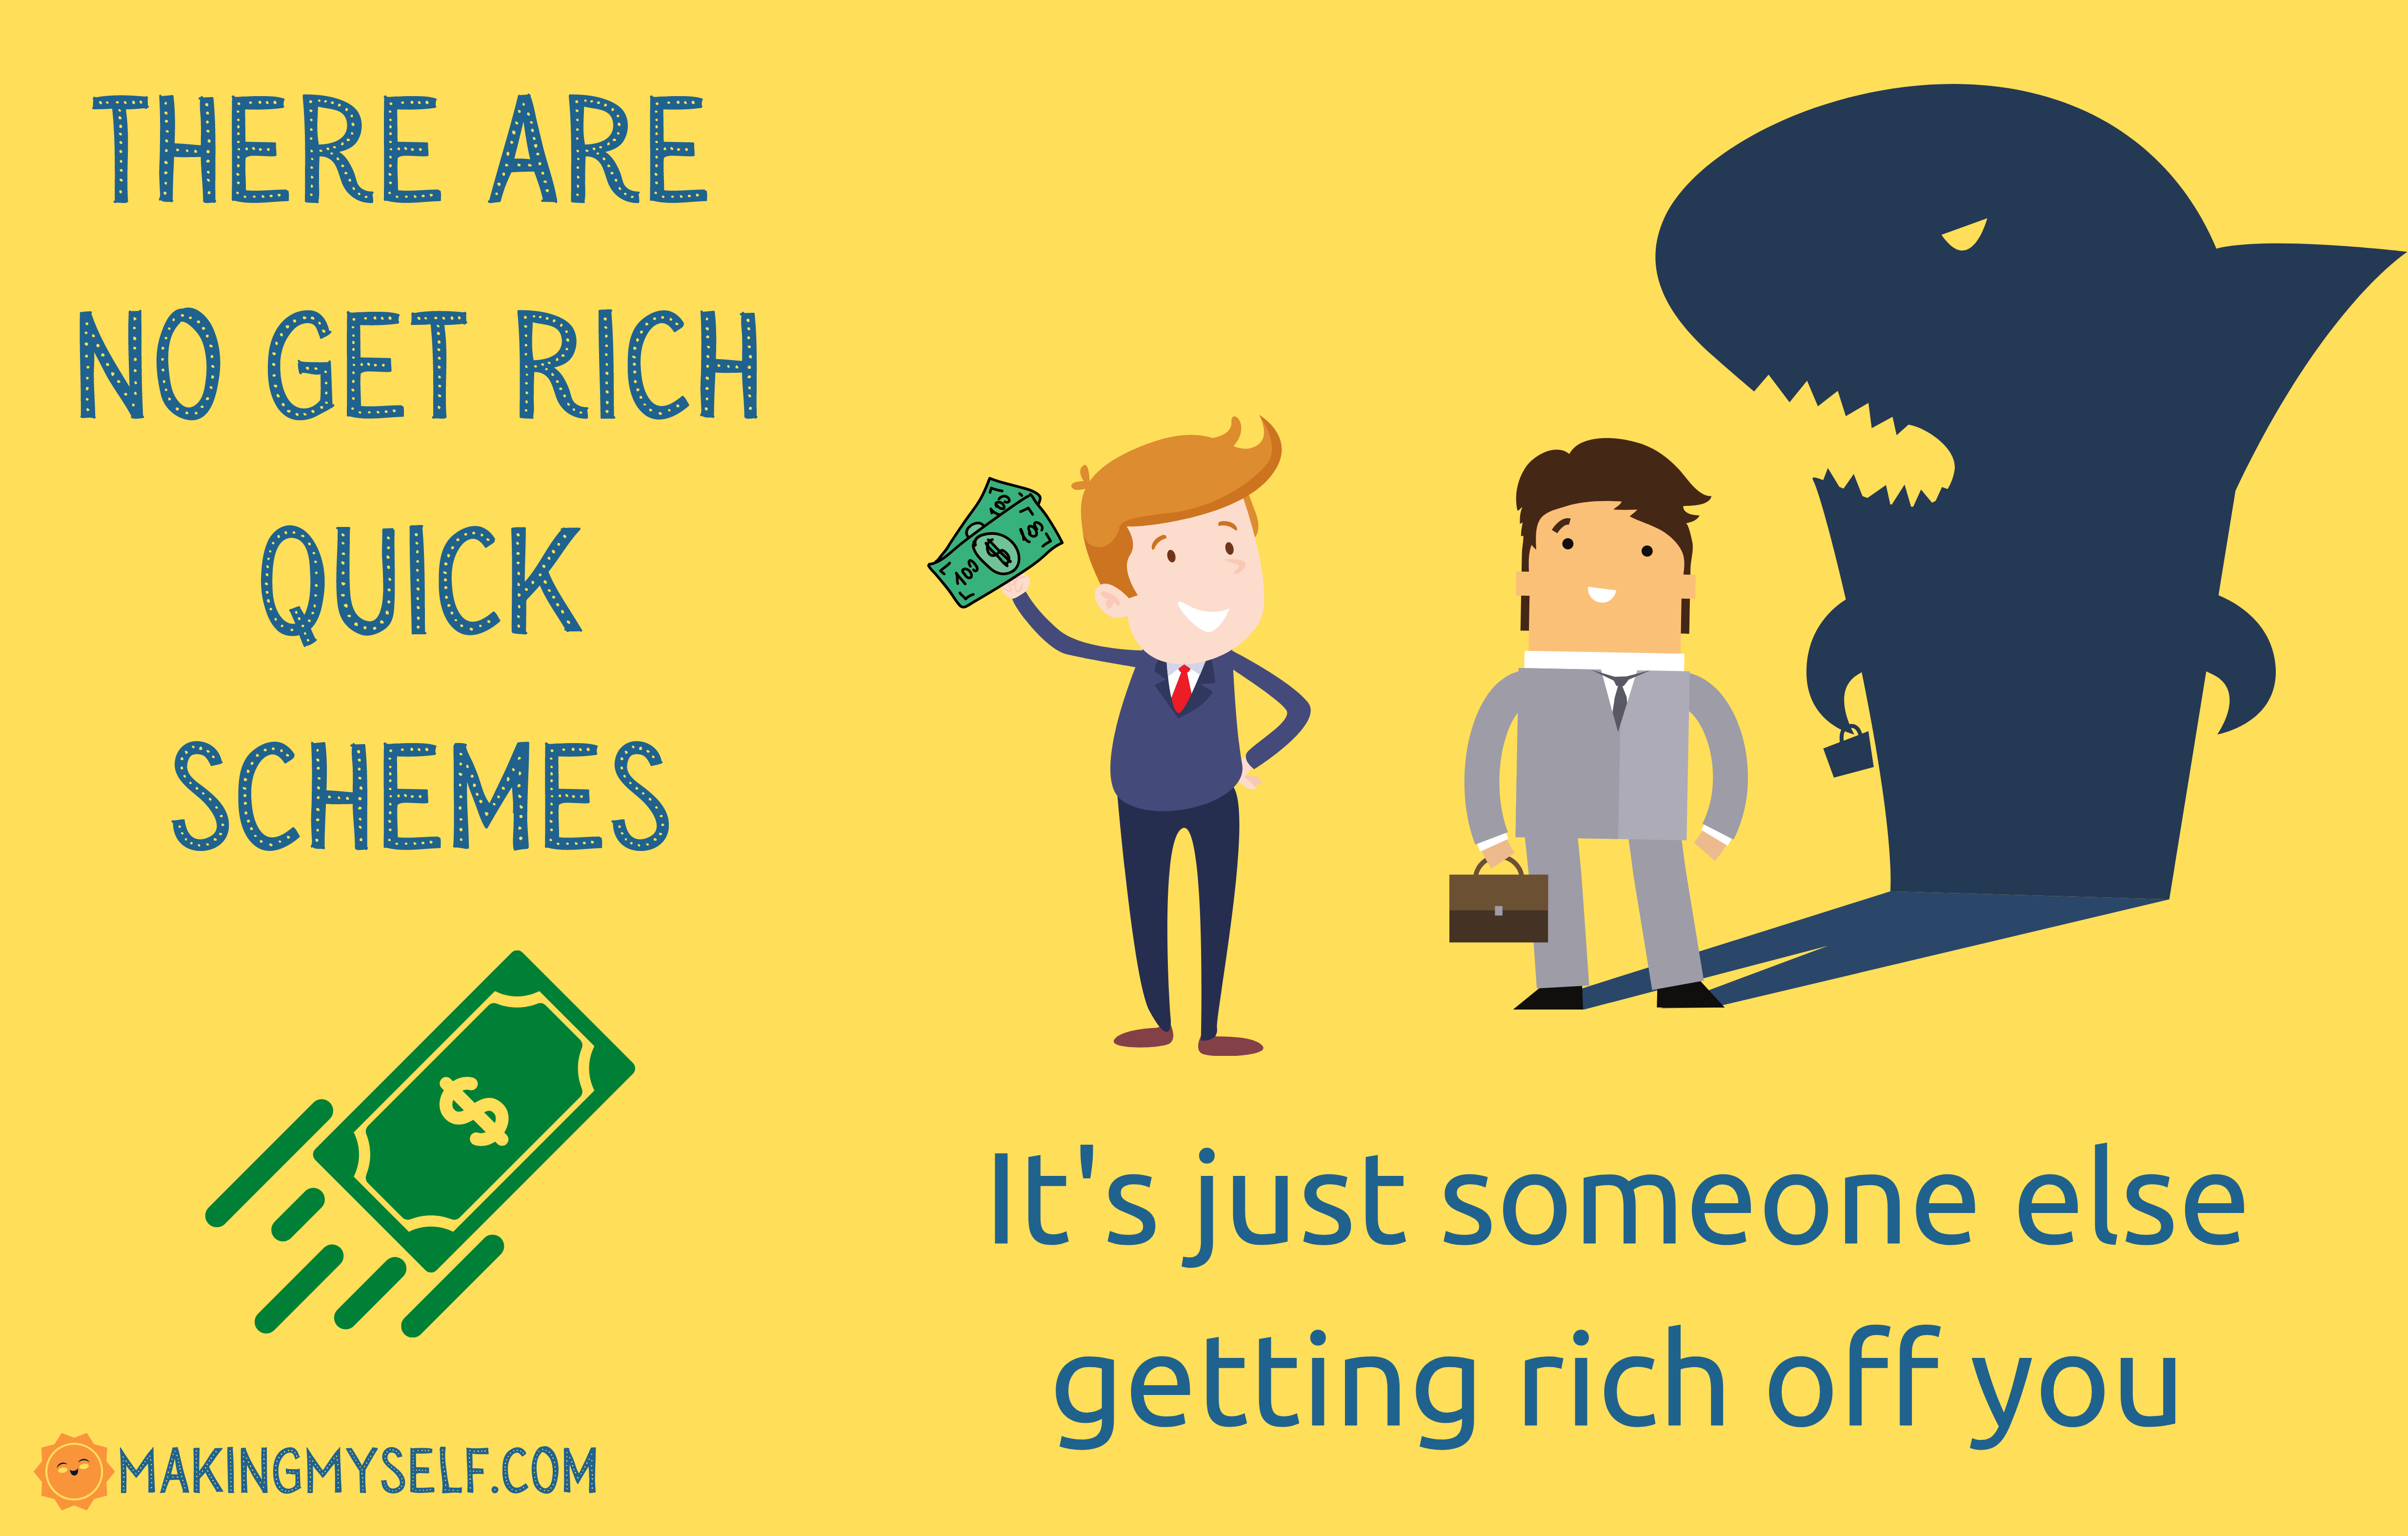 There are no get rich quick schemes